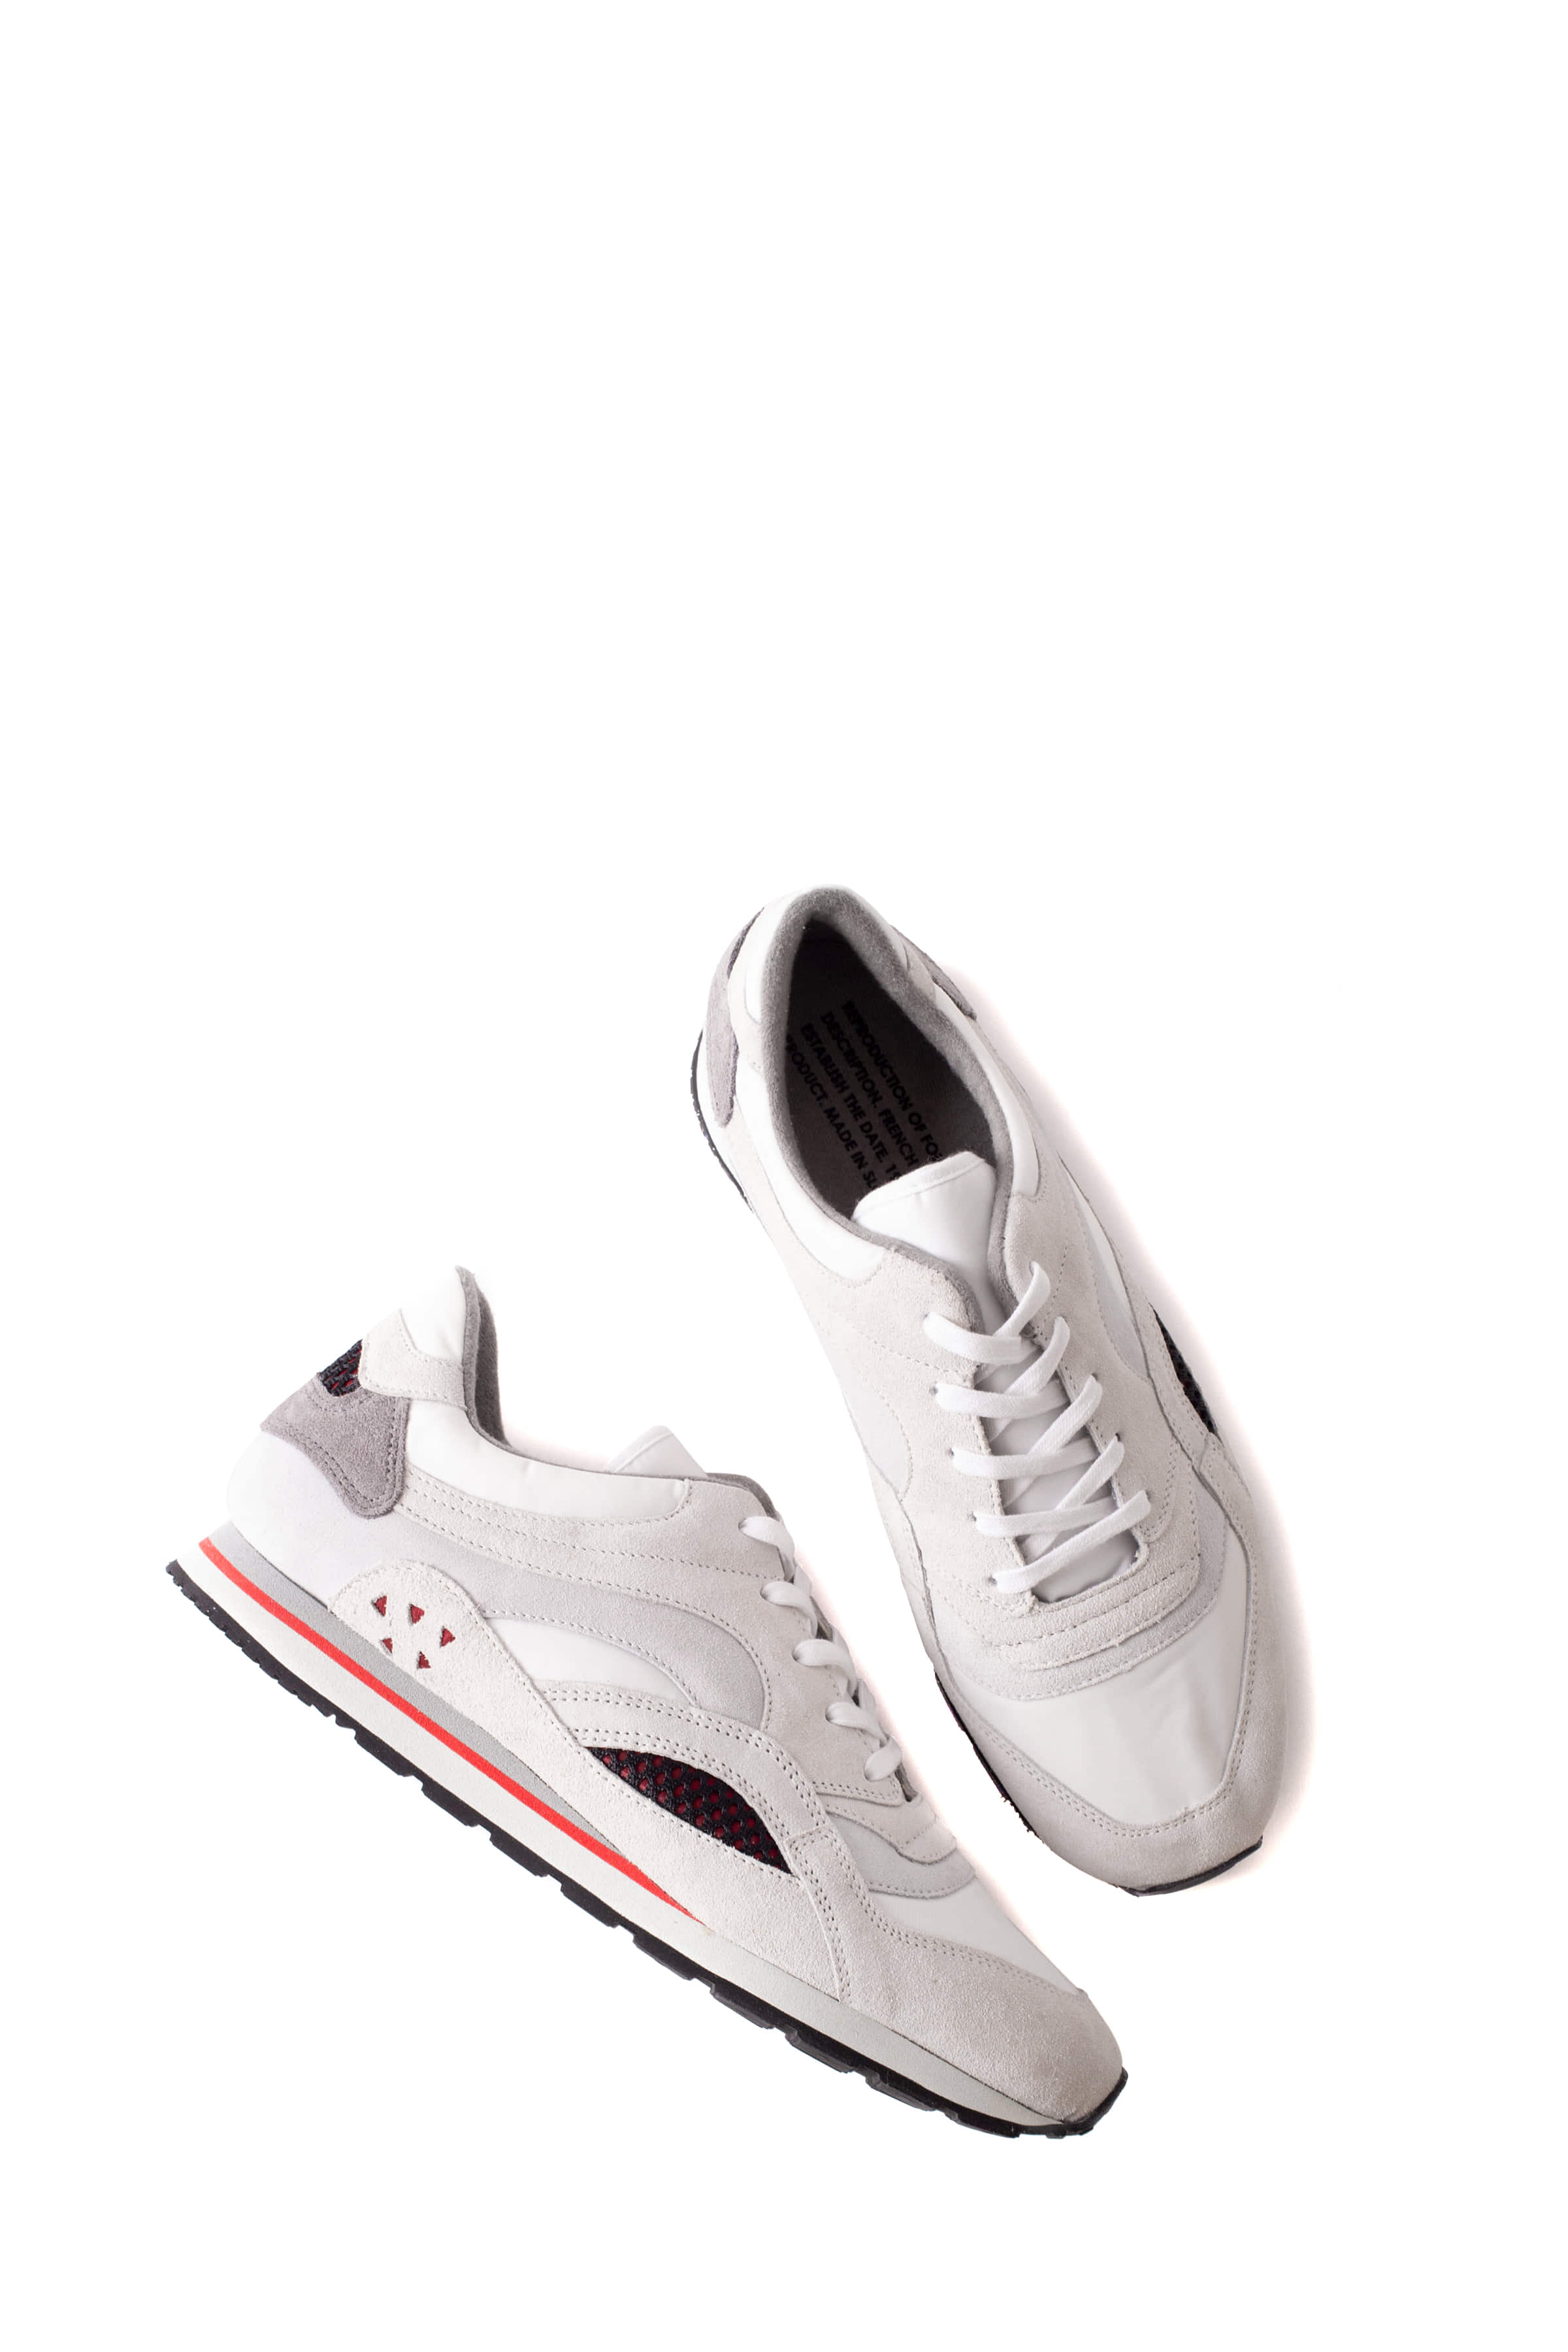 REPRODUCTION OF FOUND : French Military Trainer 1400 (White)